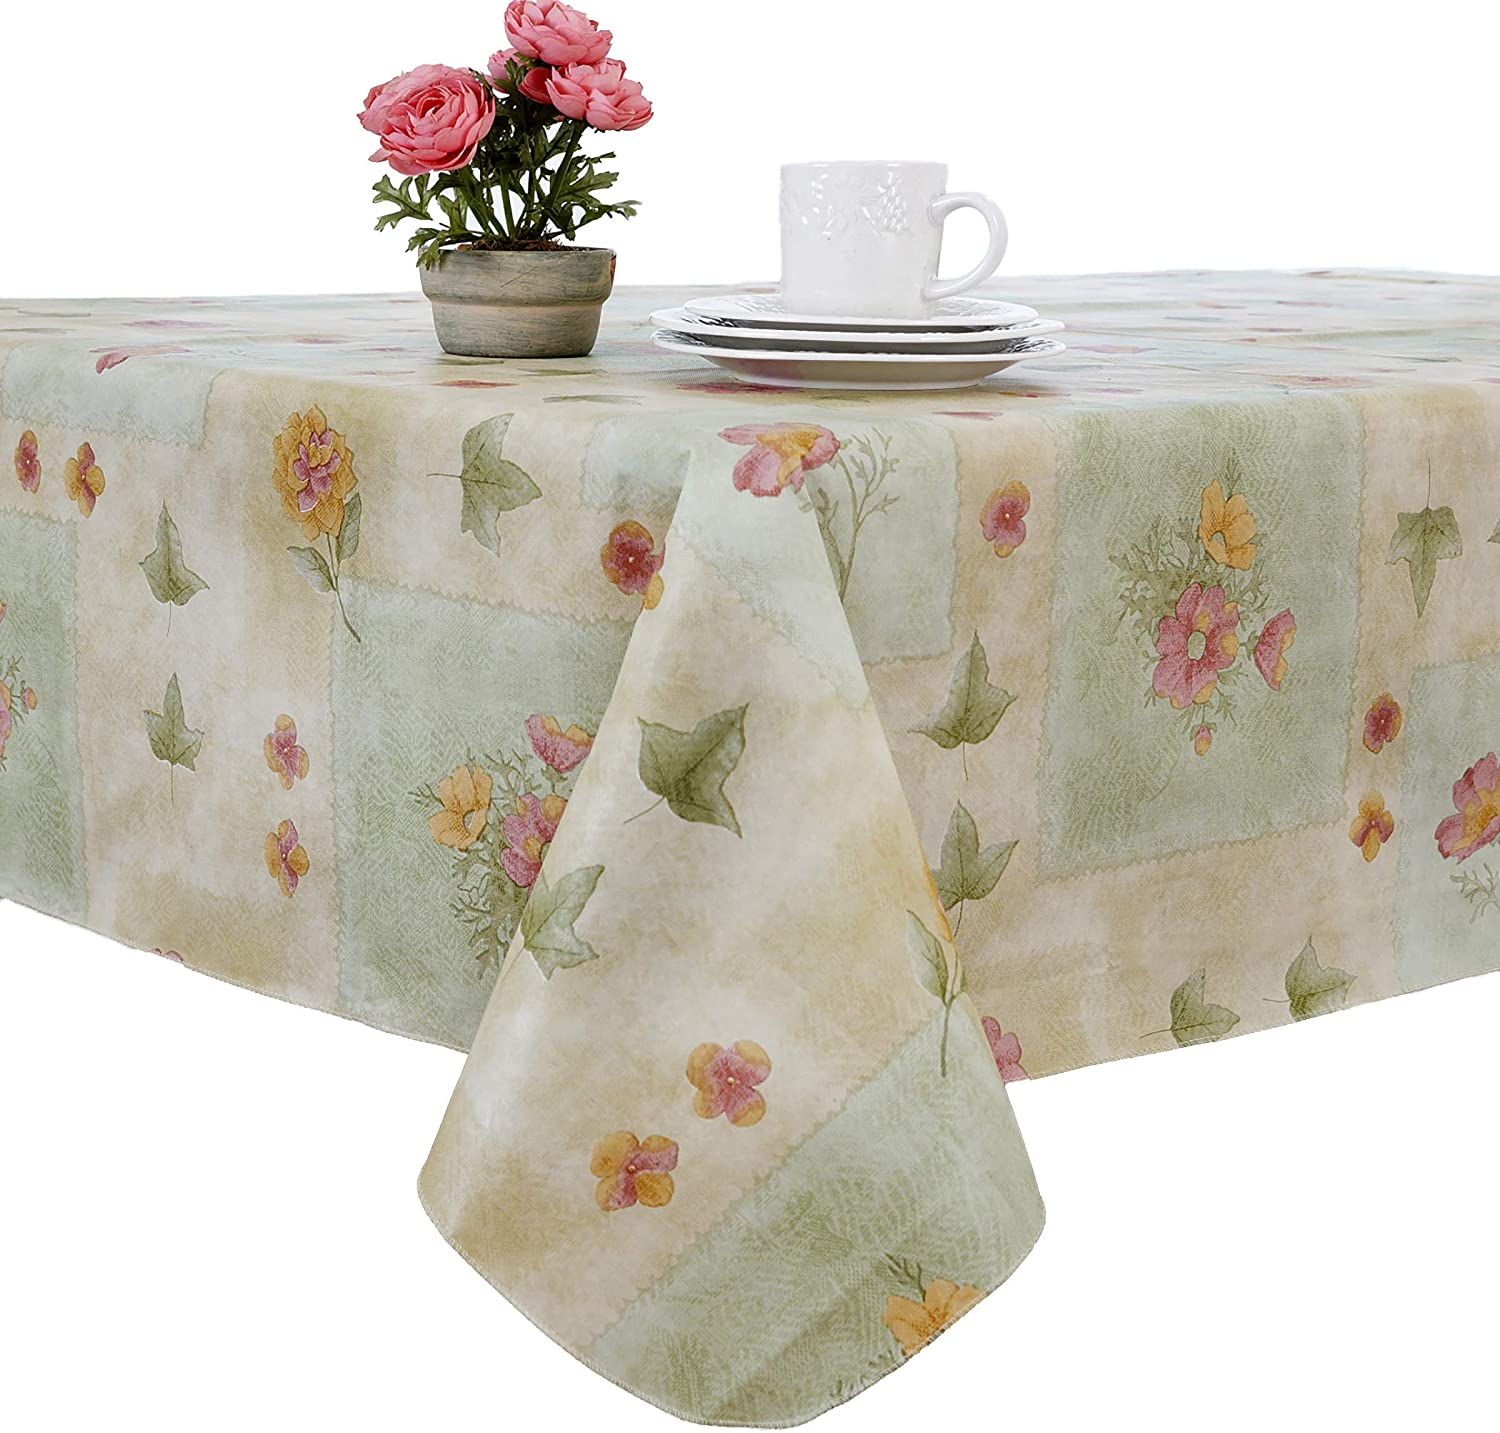 EVERYDAY LUXURIES Peony Patch Flannel Backed Indoor Outdoor Vinyl Table Linens, 60-Inch by 120-Inch Oblong Rectangle , Sage